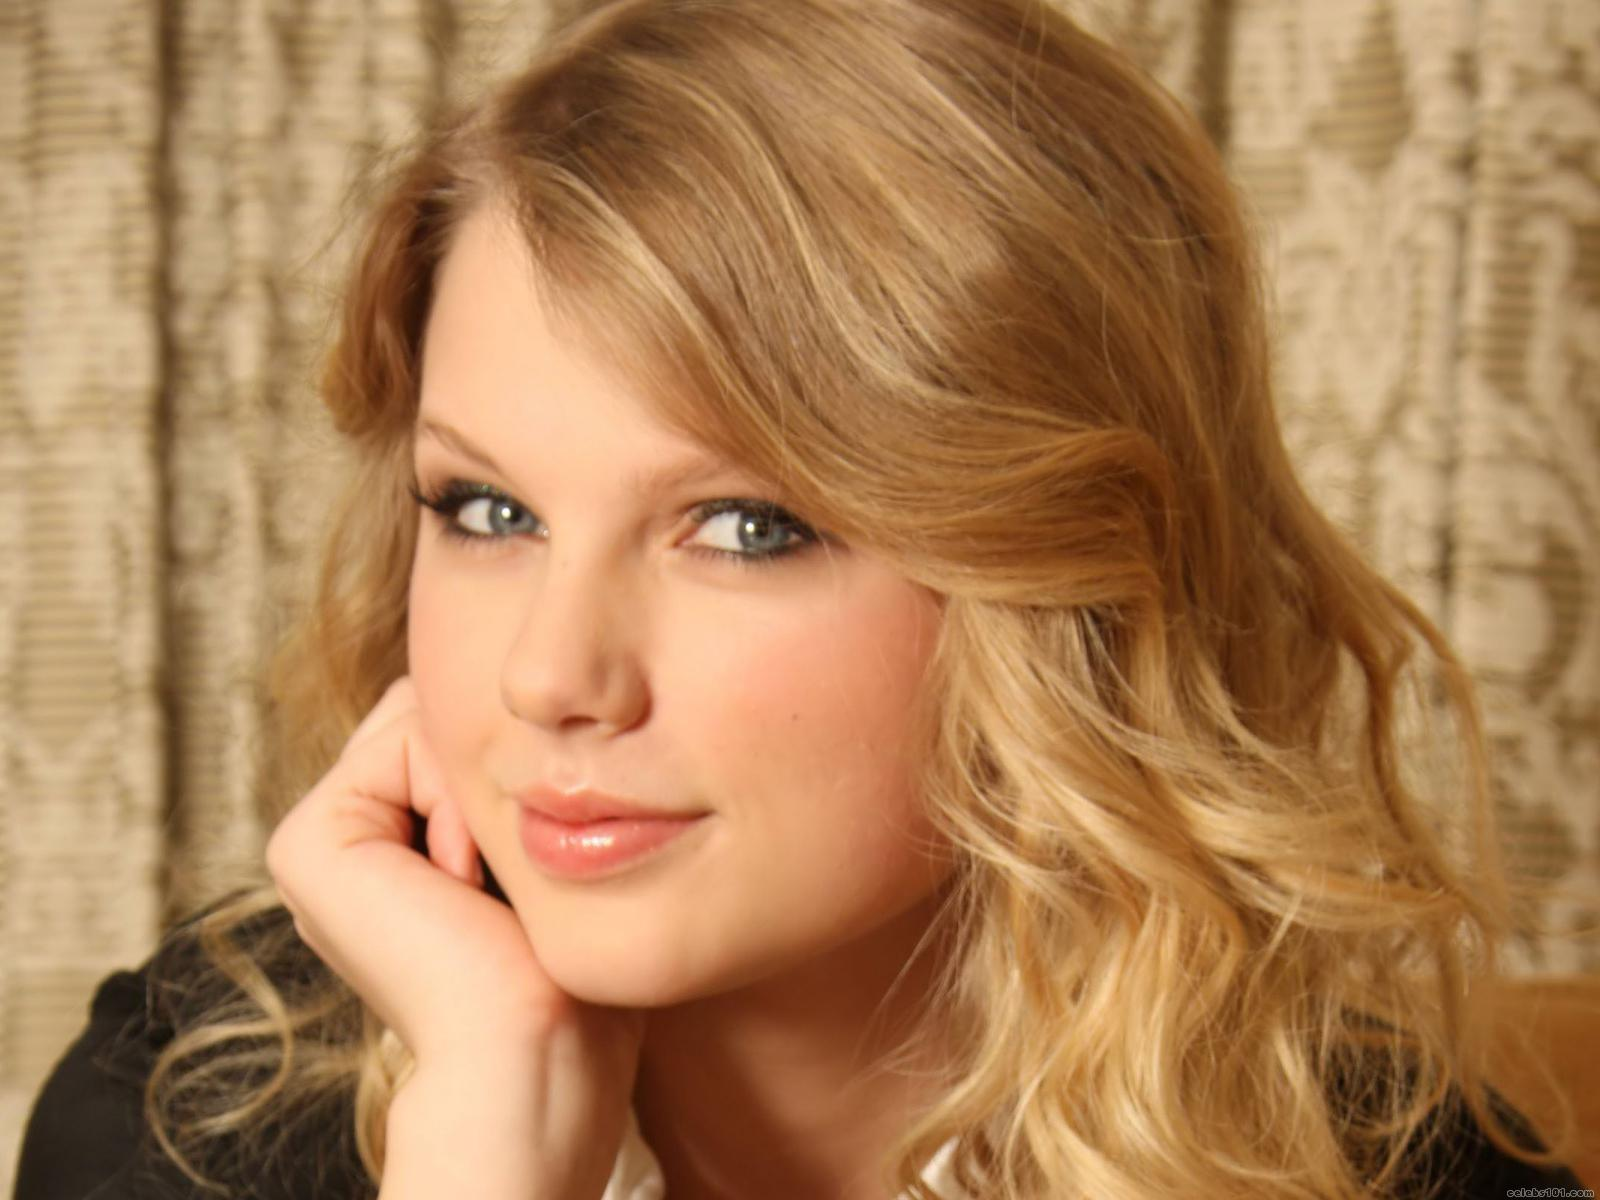 Hot HD Wallpaper Taylor Swift Wallpaper HD 1600x1200